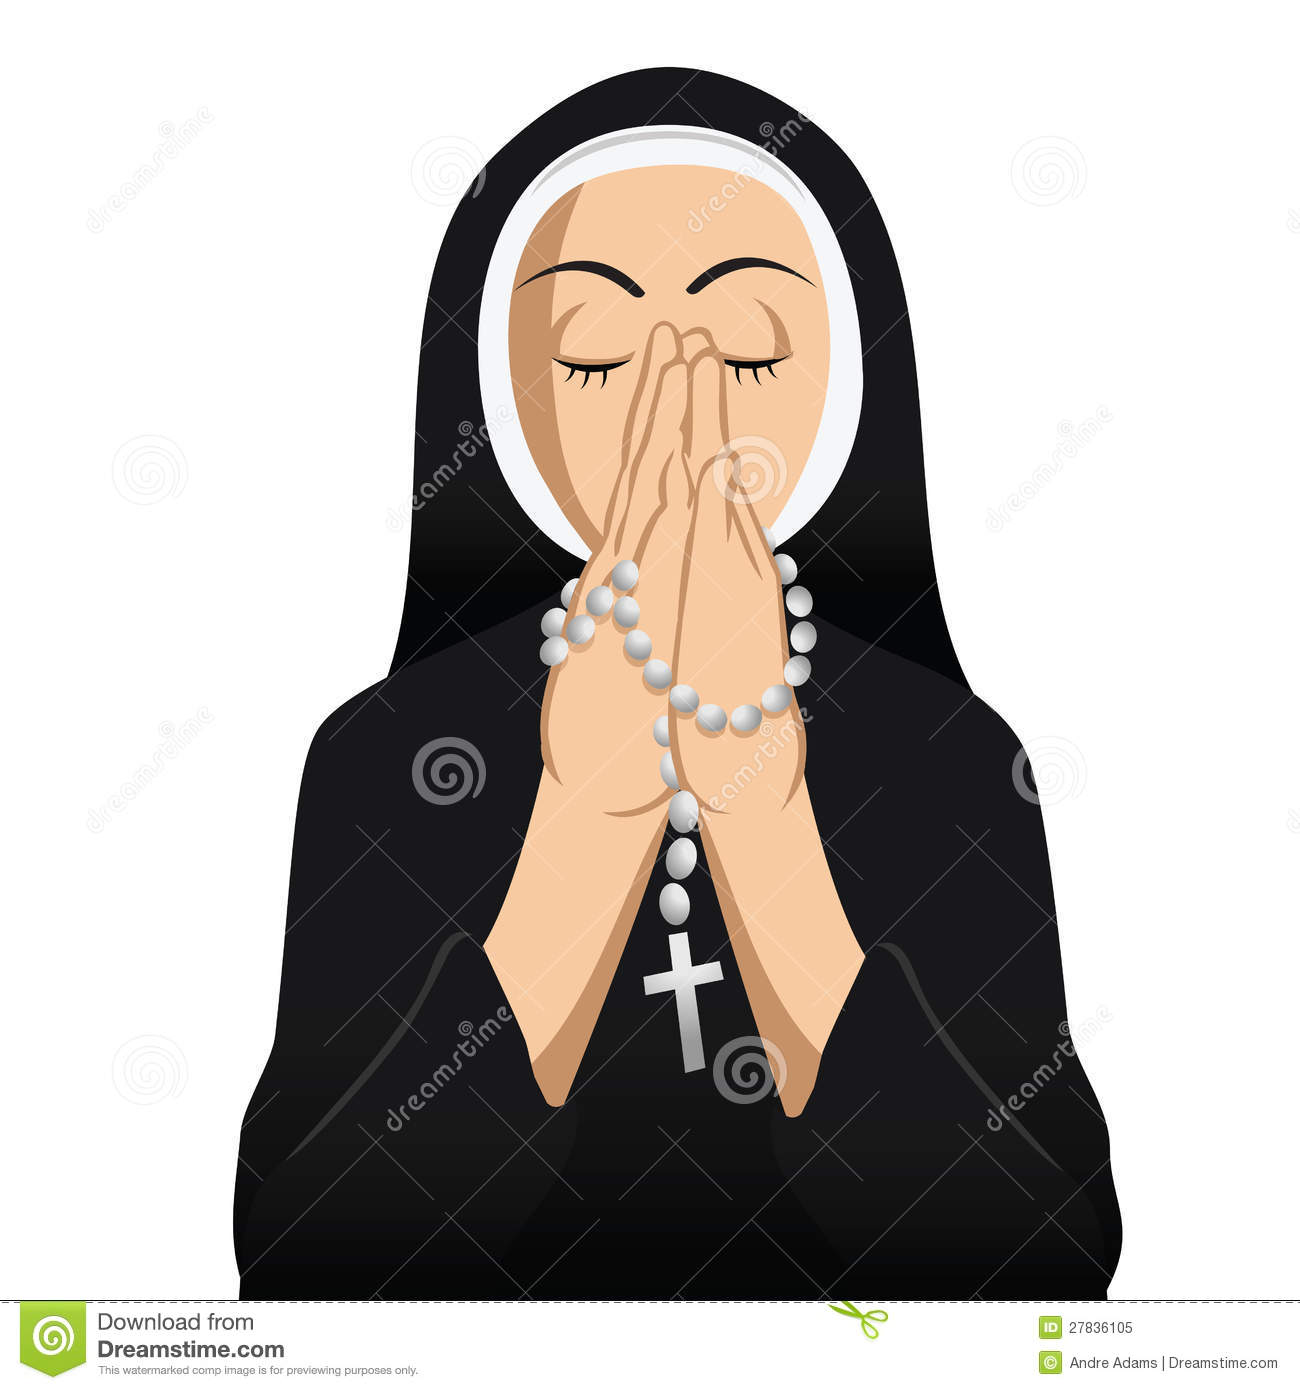 Nun clipart #10, Download drawings